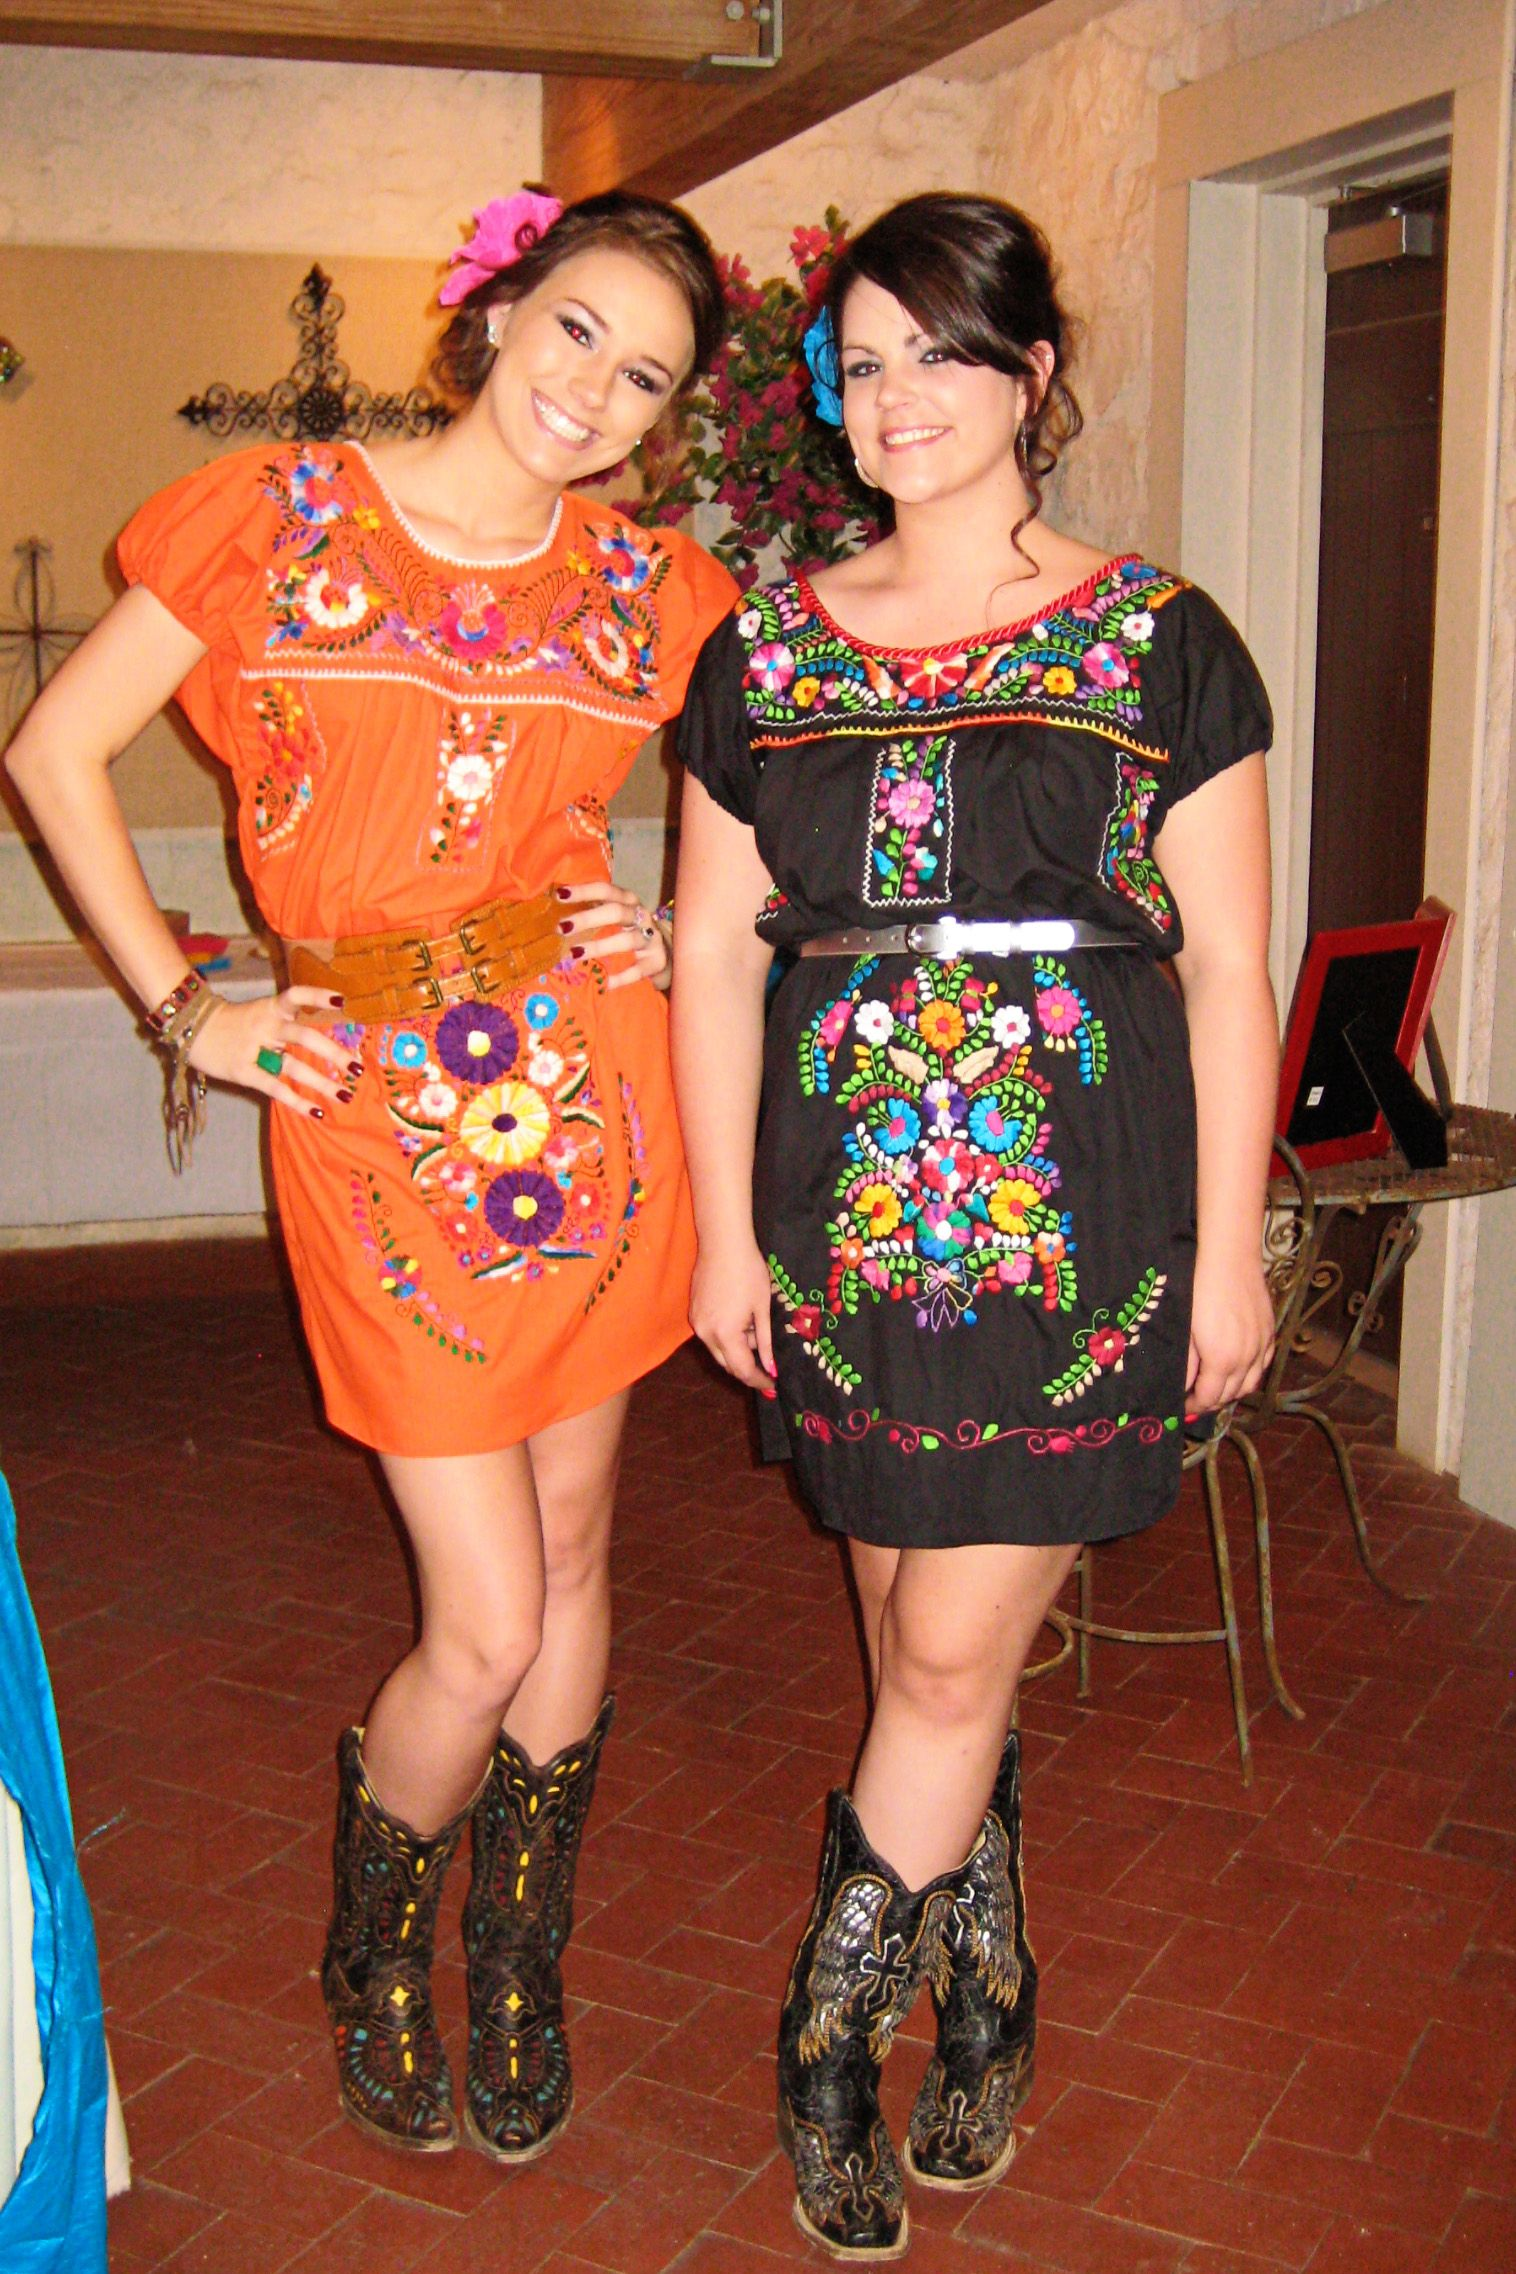 Two Of The Beautiful Bridesmaids! | Fiesta Wedding Fiesta | Pinterest | Mexicans Fiestas And ...